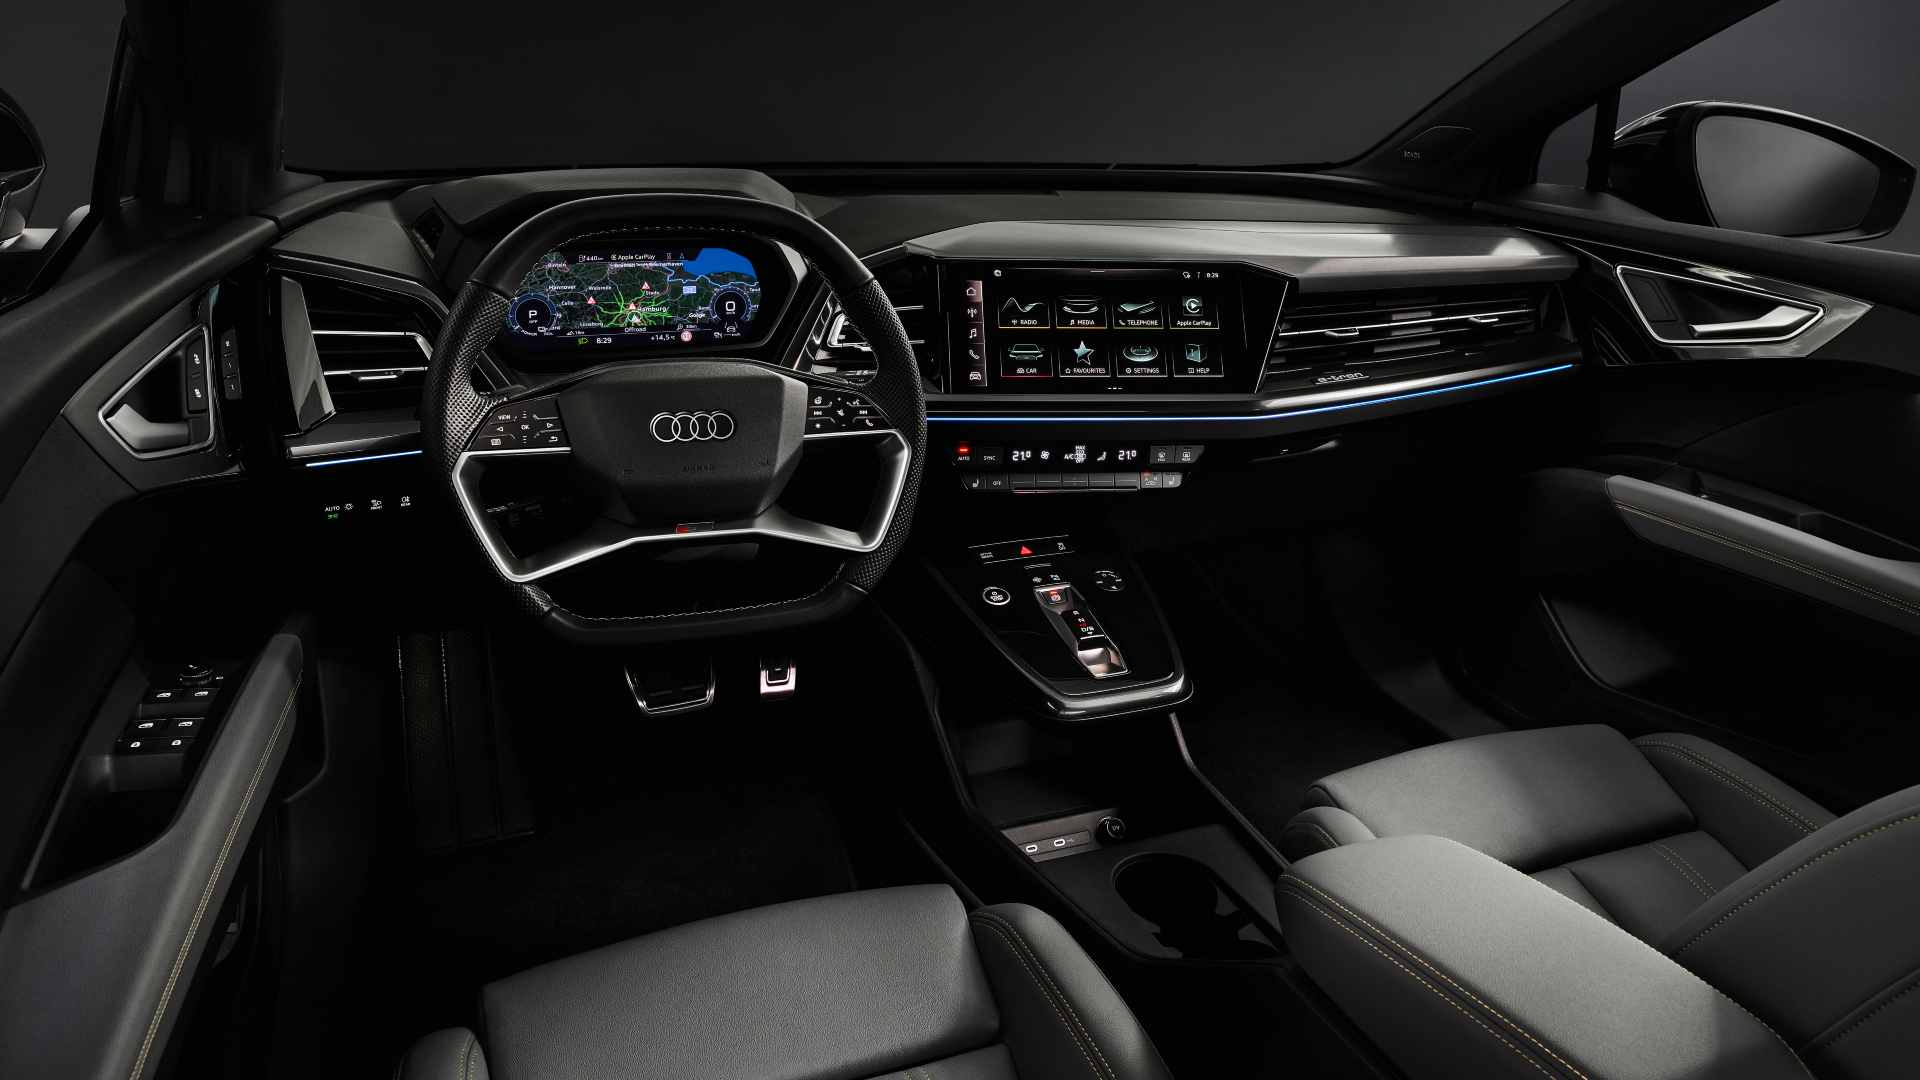 A highlight of the Audi Q4 e-tron's interior is the augmented reality head-up display. Image: Audi